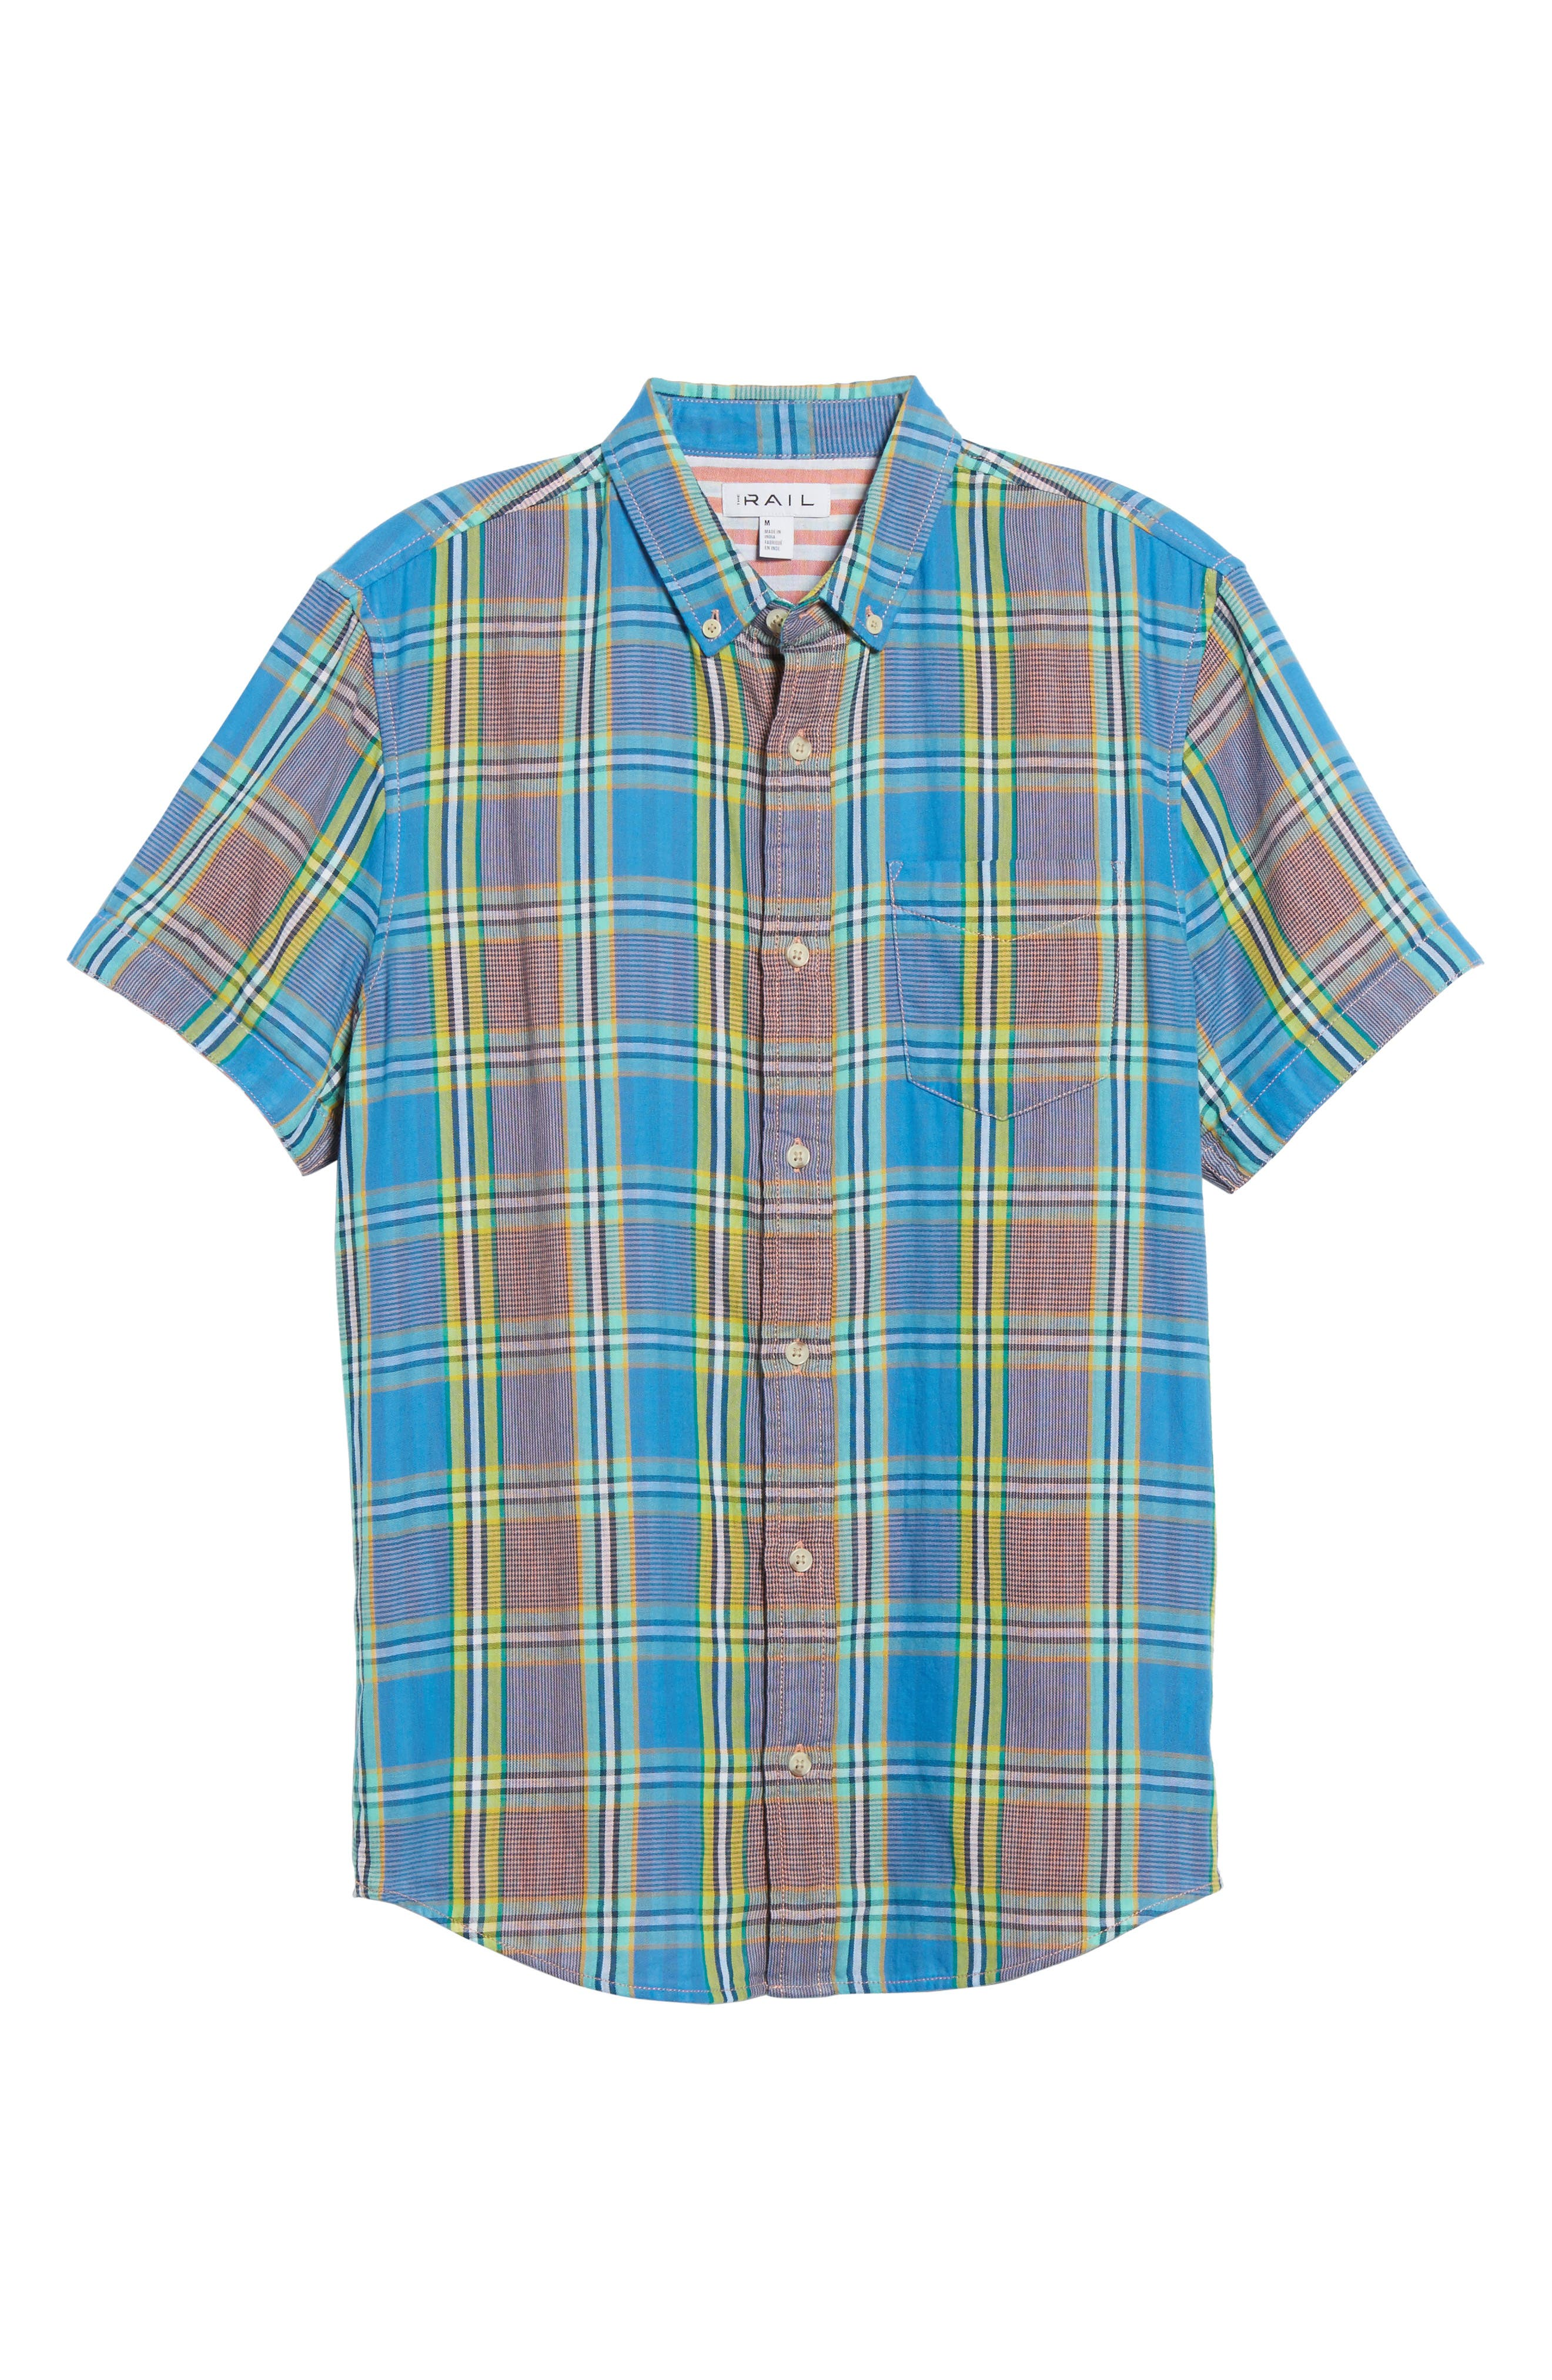 Short Sleeve Plaid Duofold Shirt,                             Alternate thumbnail 6, color,                             Blue Green Plaid Duo Fold